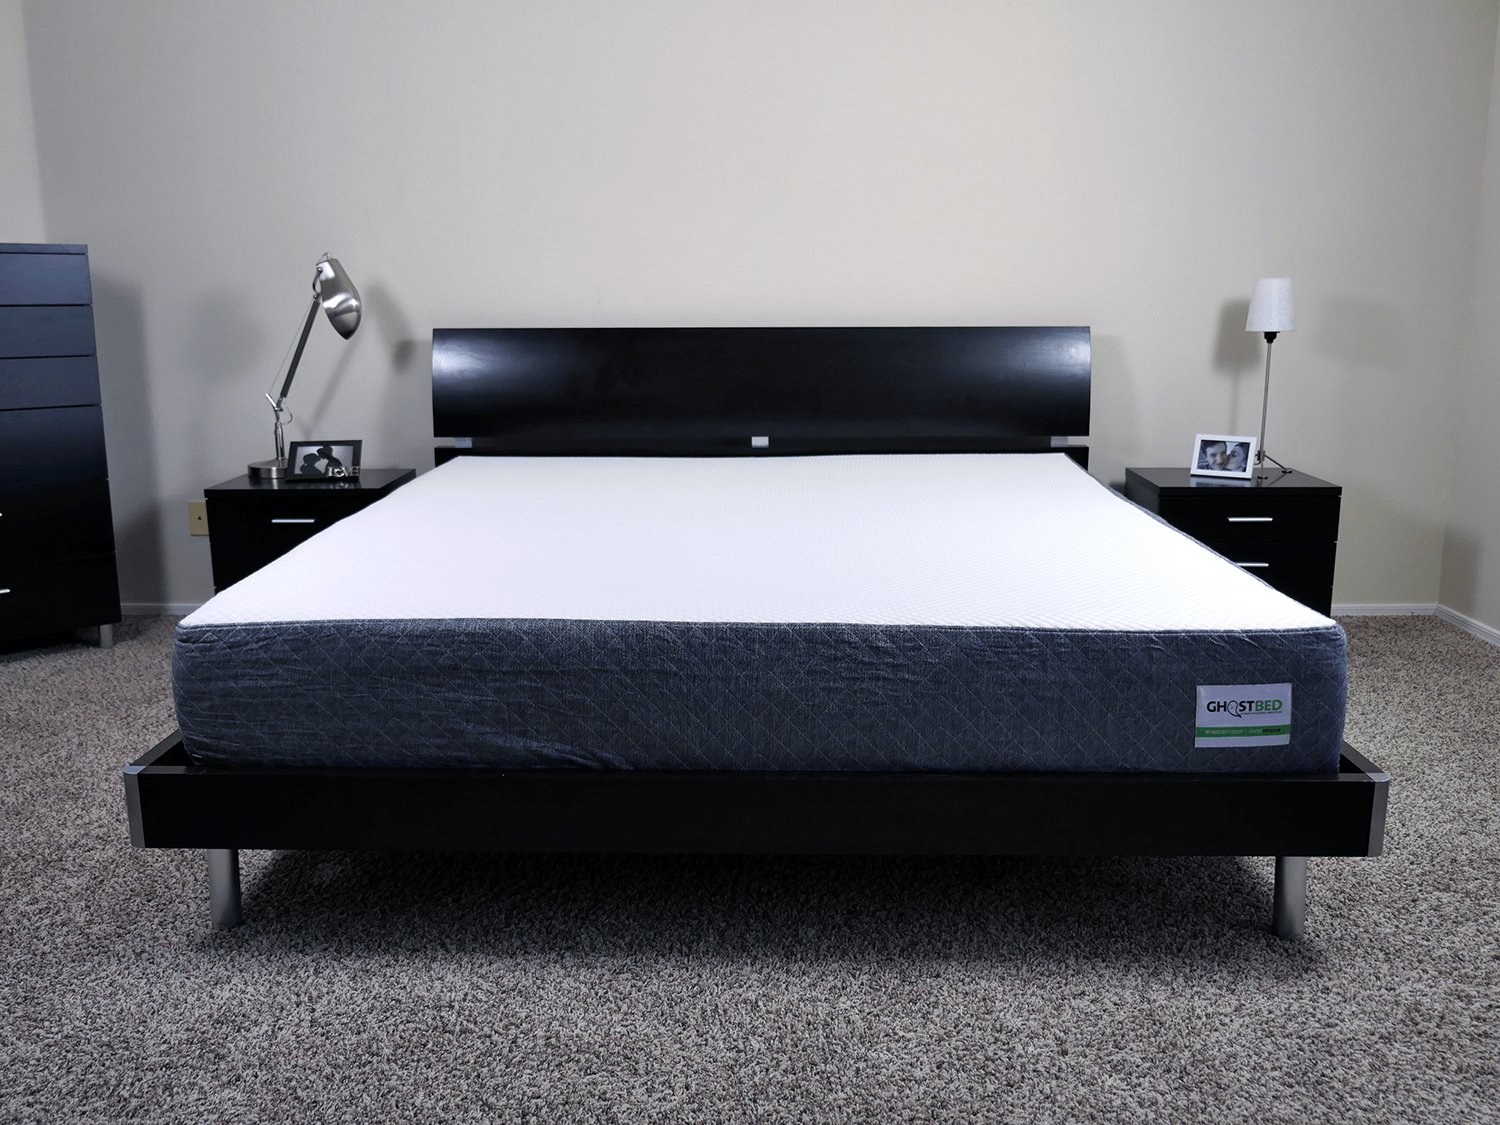 Ghostbed vs purple mattress review sleepopolis for Best store to buy a mattress